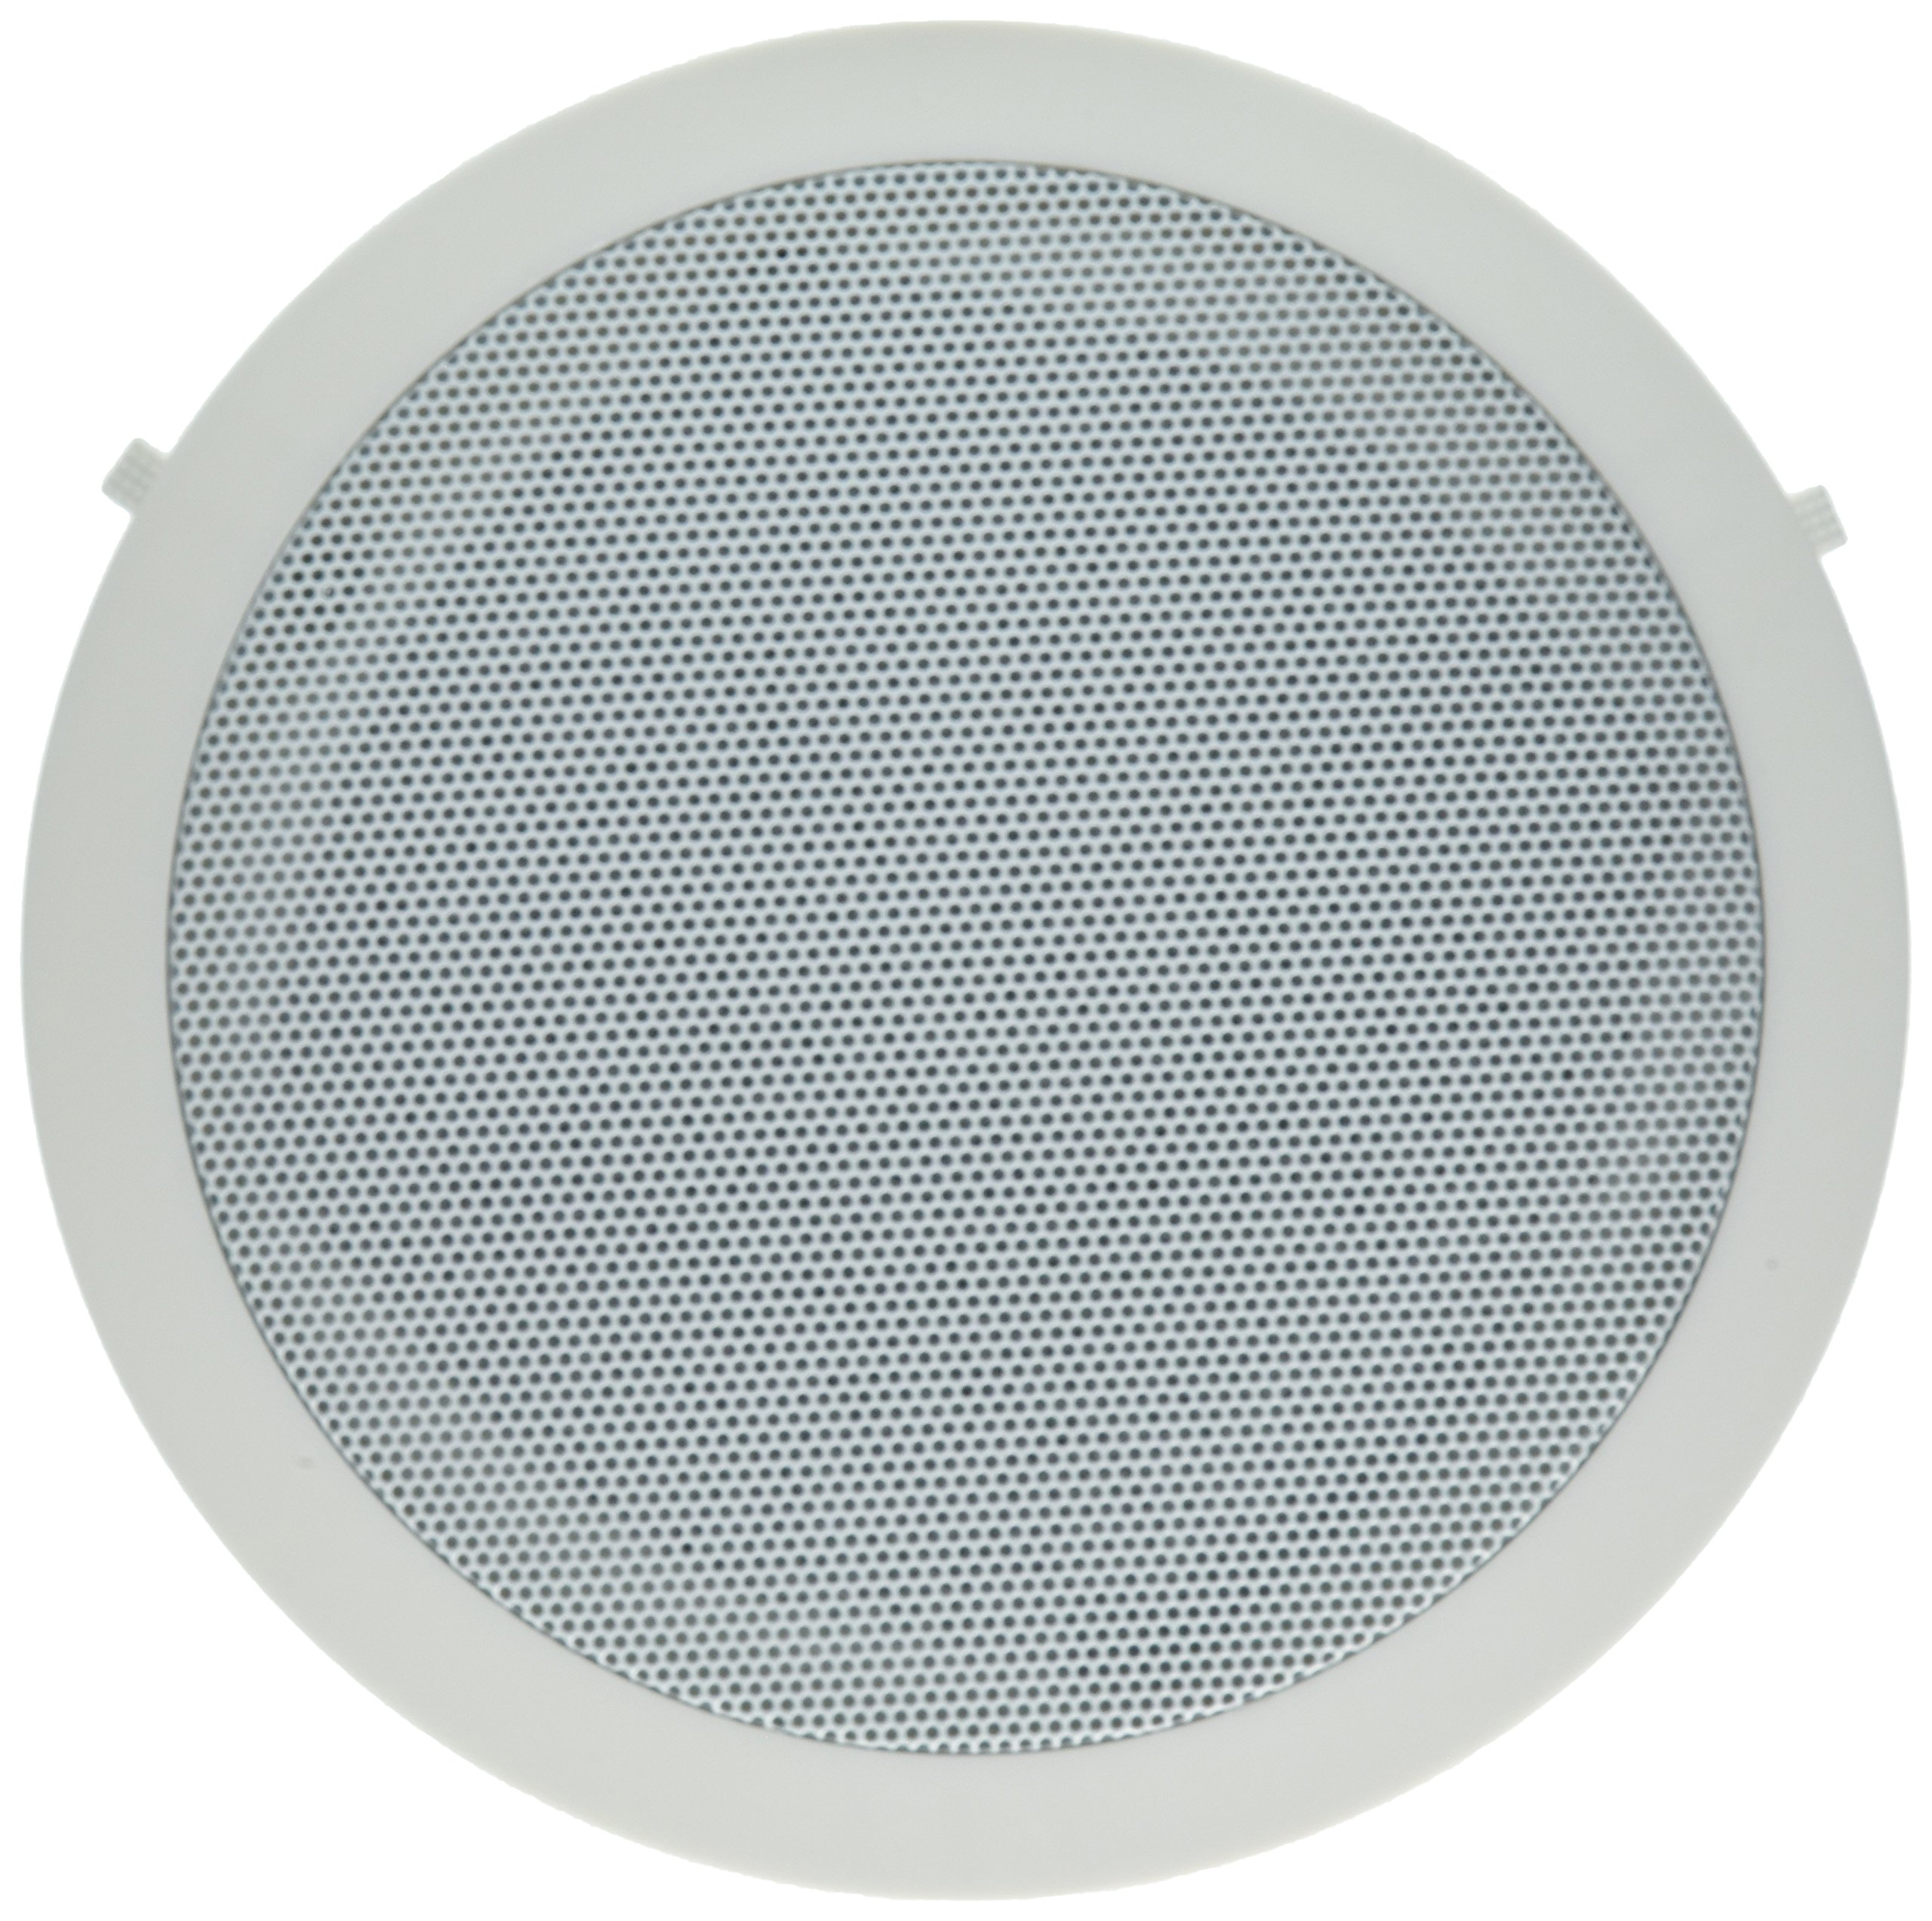 Acoustic Audio R191 5.25-Inch Round 2 Way Speaker (White) by Acoustic Audio by Goldwood